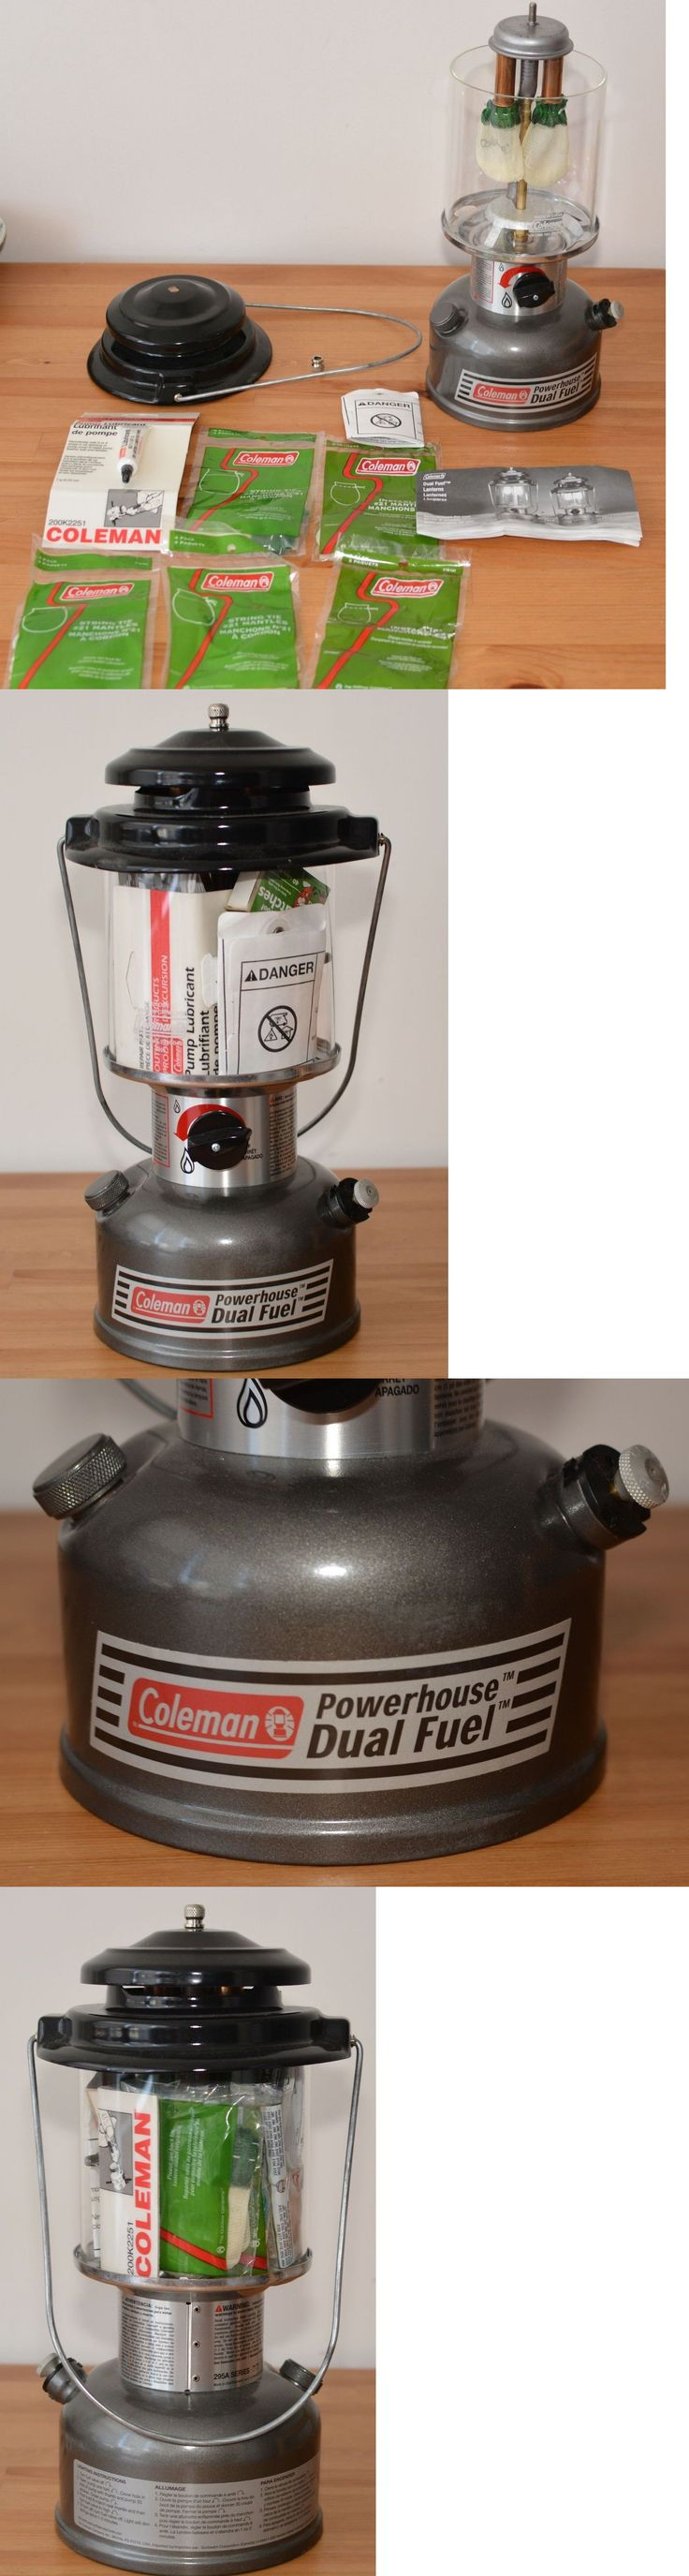 Lanterns 168867: Coleman Powerhouse Dual Fuel Camping Lantern 06 11 -> BUY IT NOW ONLY: $59.95 on eBay!